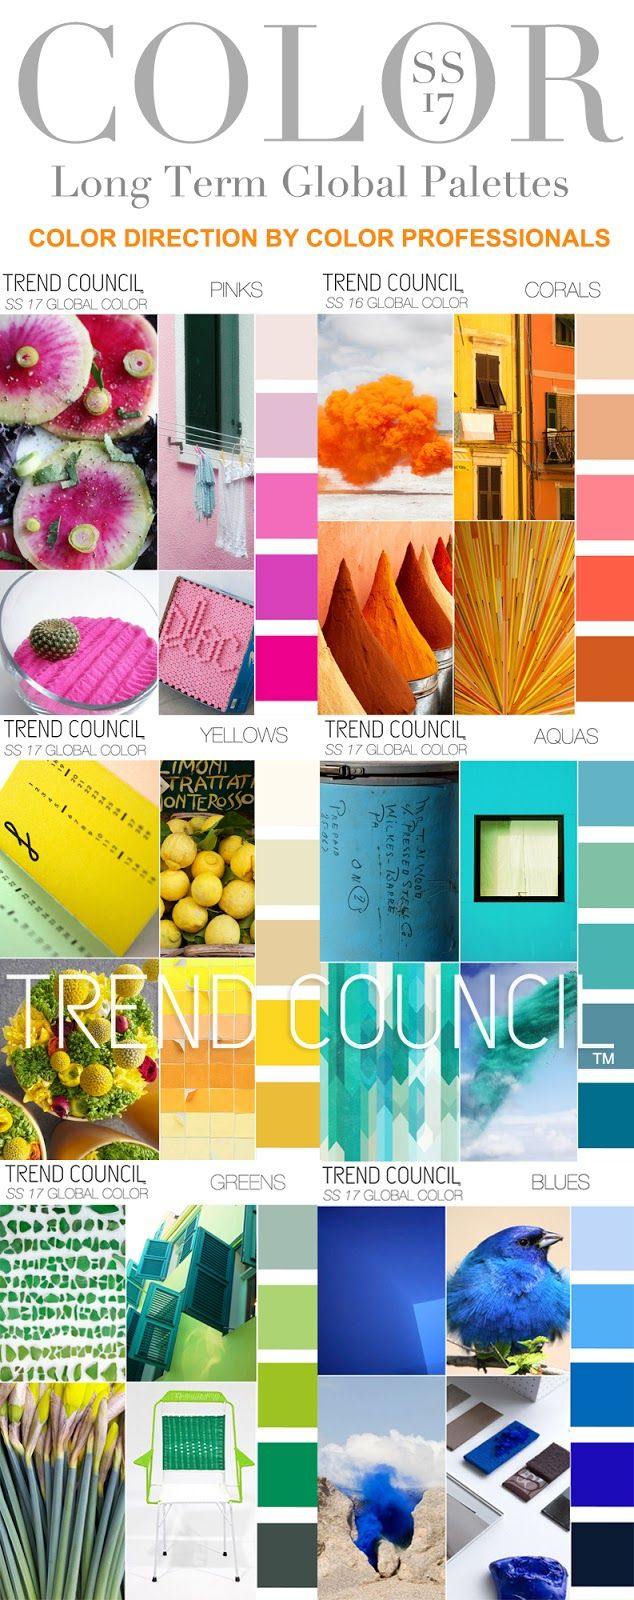 TRENDS // TREND COUNCIL - GLOBAL COLOR DIRECTION . SS 2017